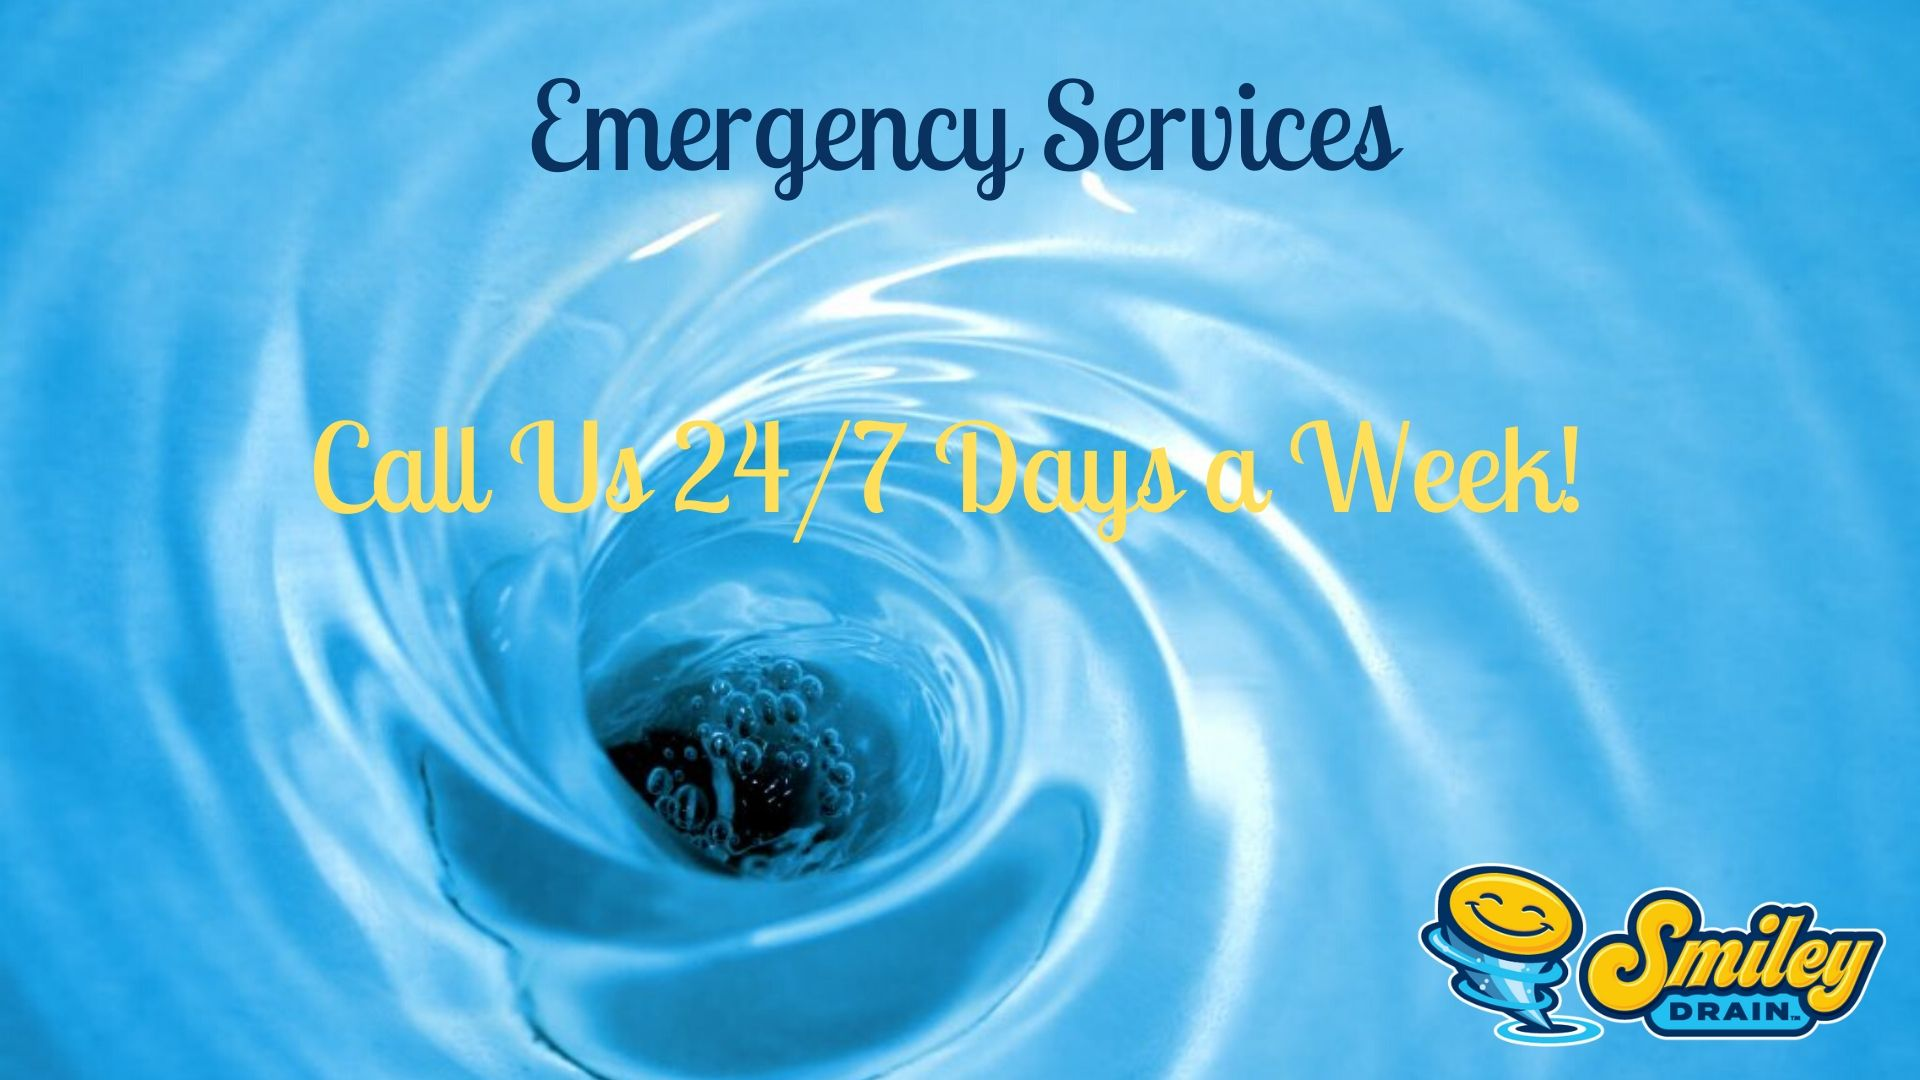 Emergency Plumbing and Drain cleaning